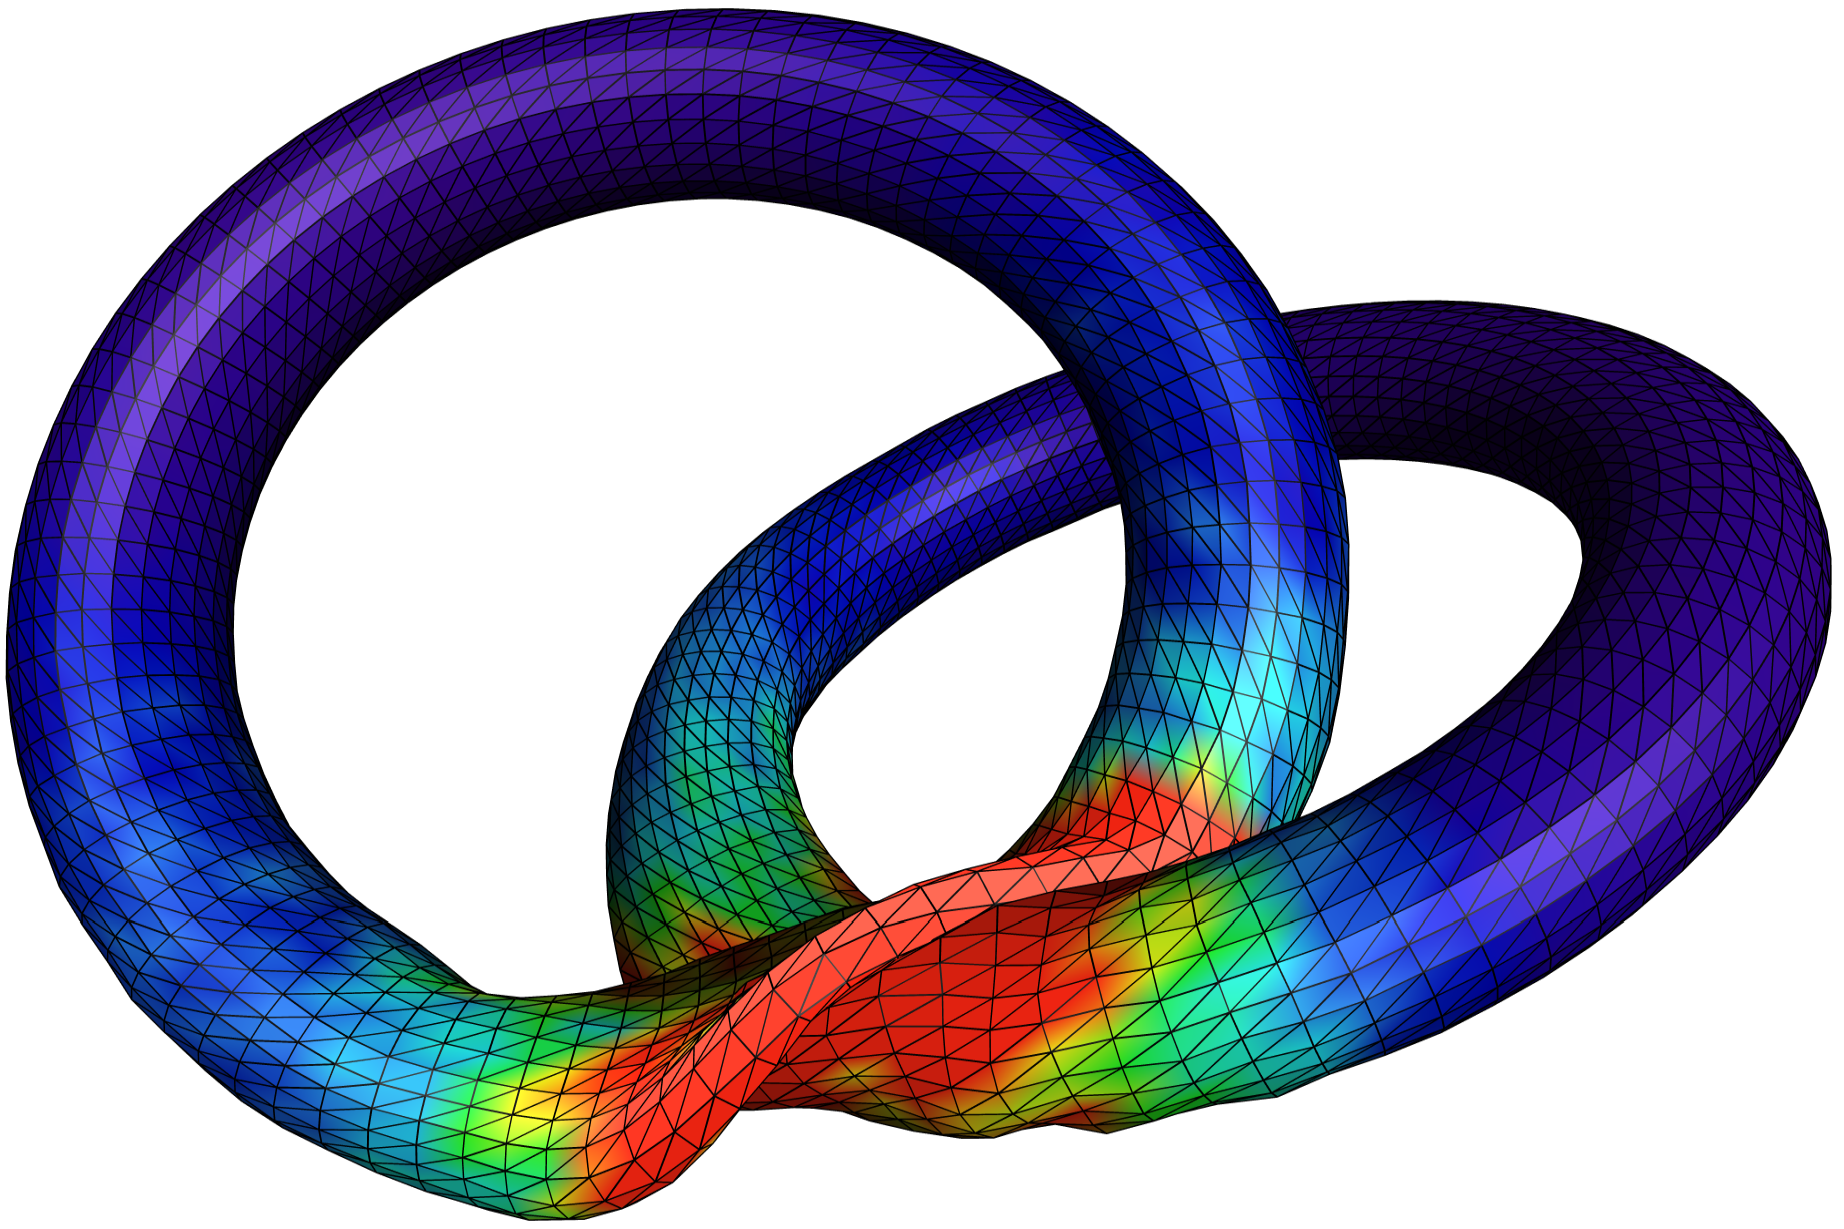 static/img/example-large-deformation-torus.png